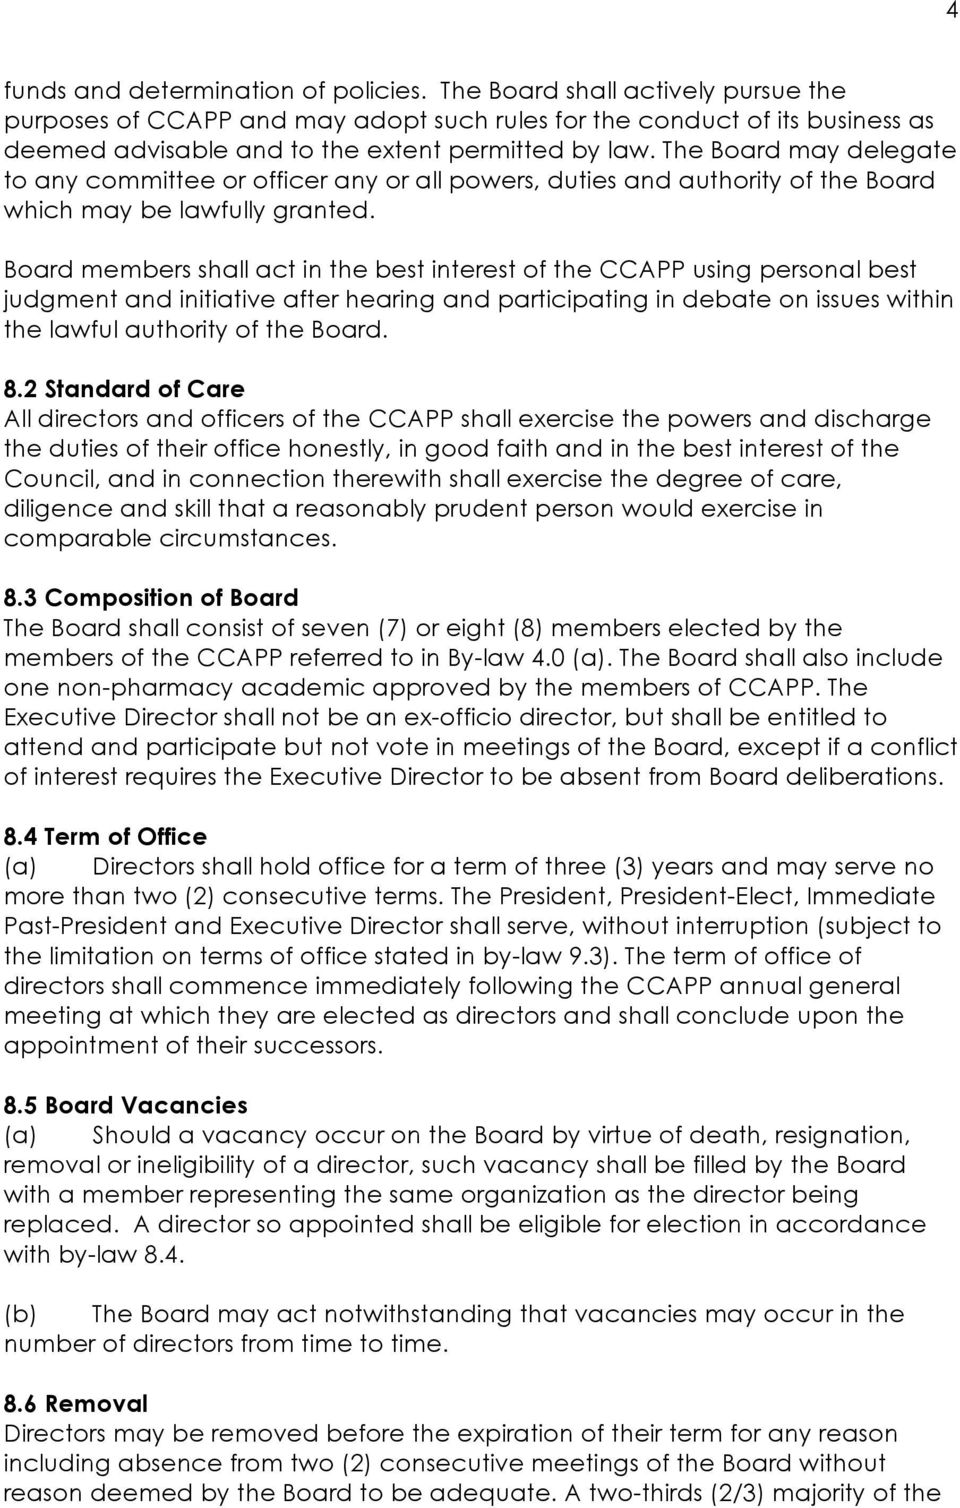 The Board may delegate to any committee or officer any or all powers, duties and authority of the Board which may be lawfully granted.